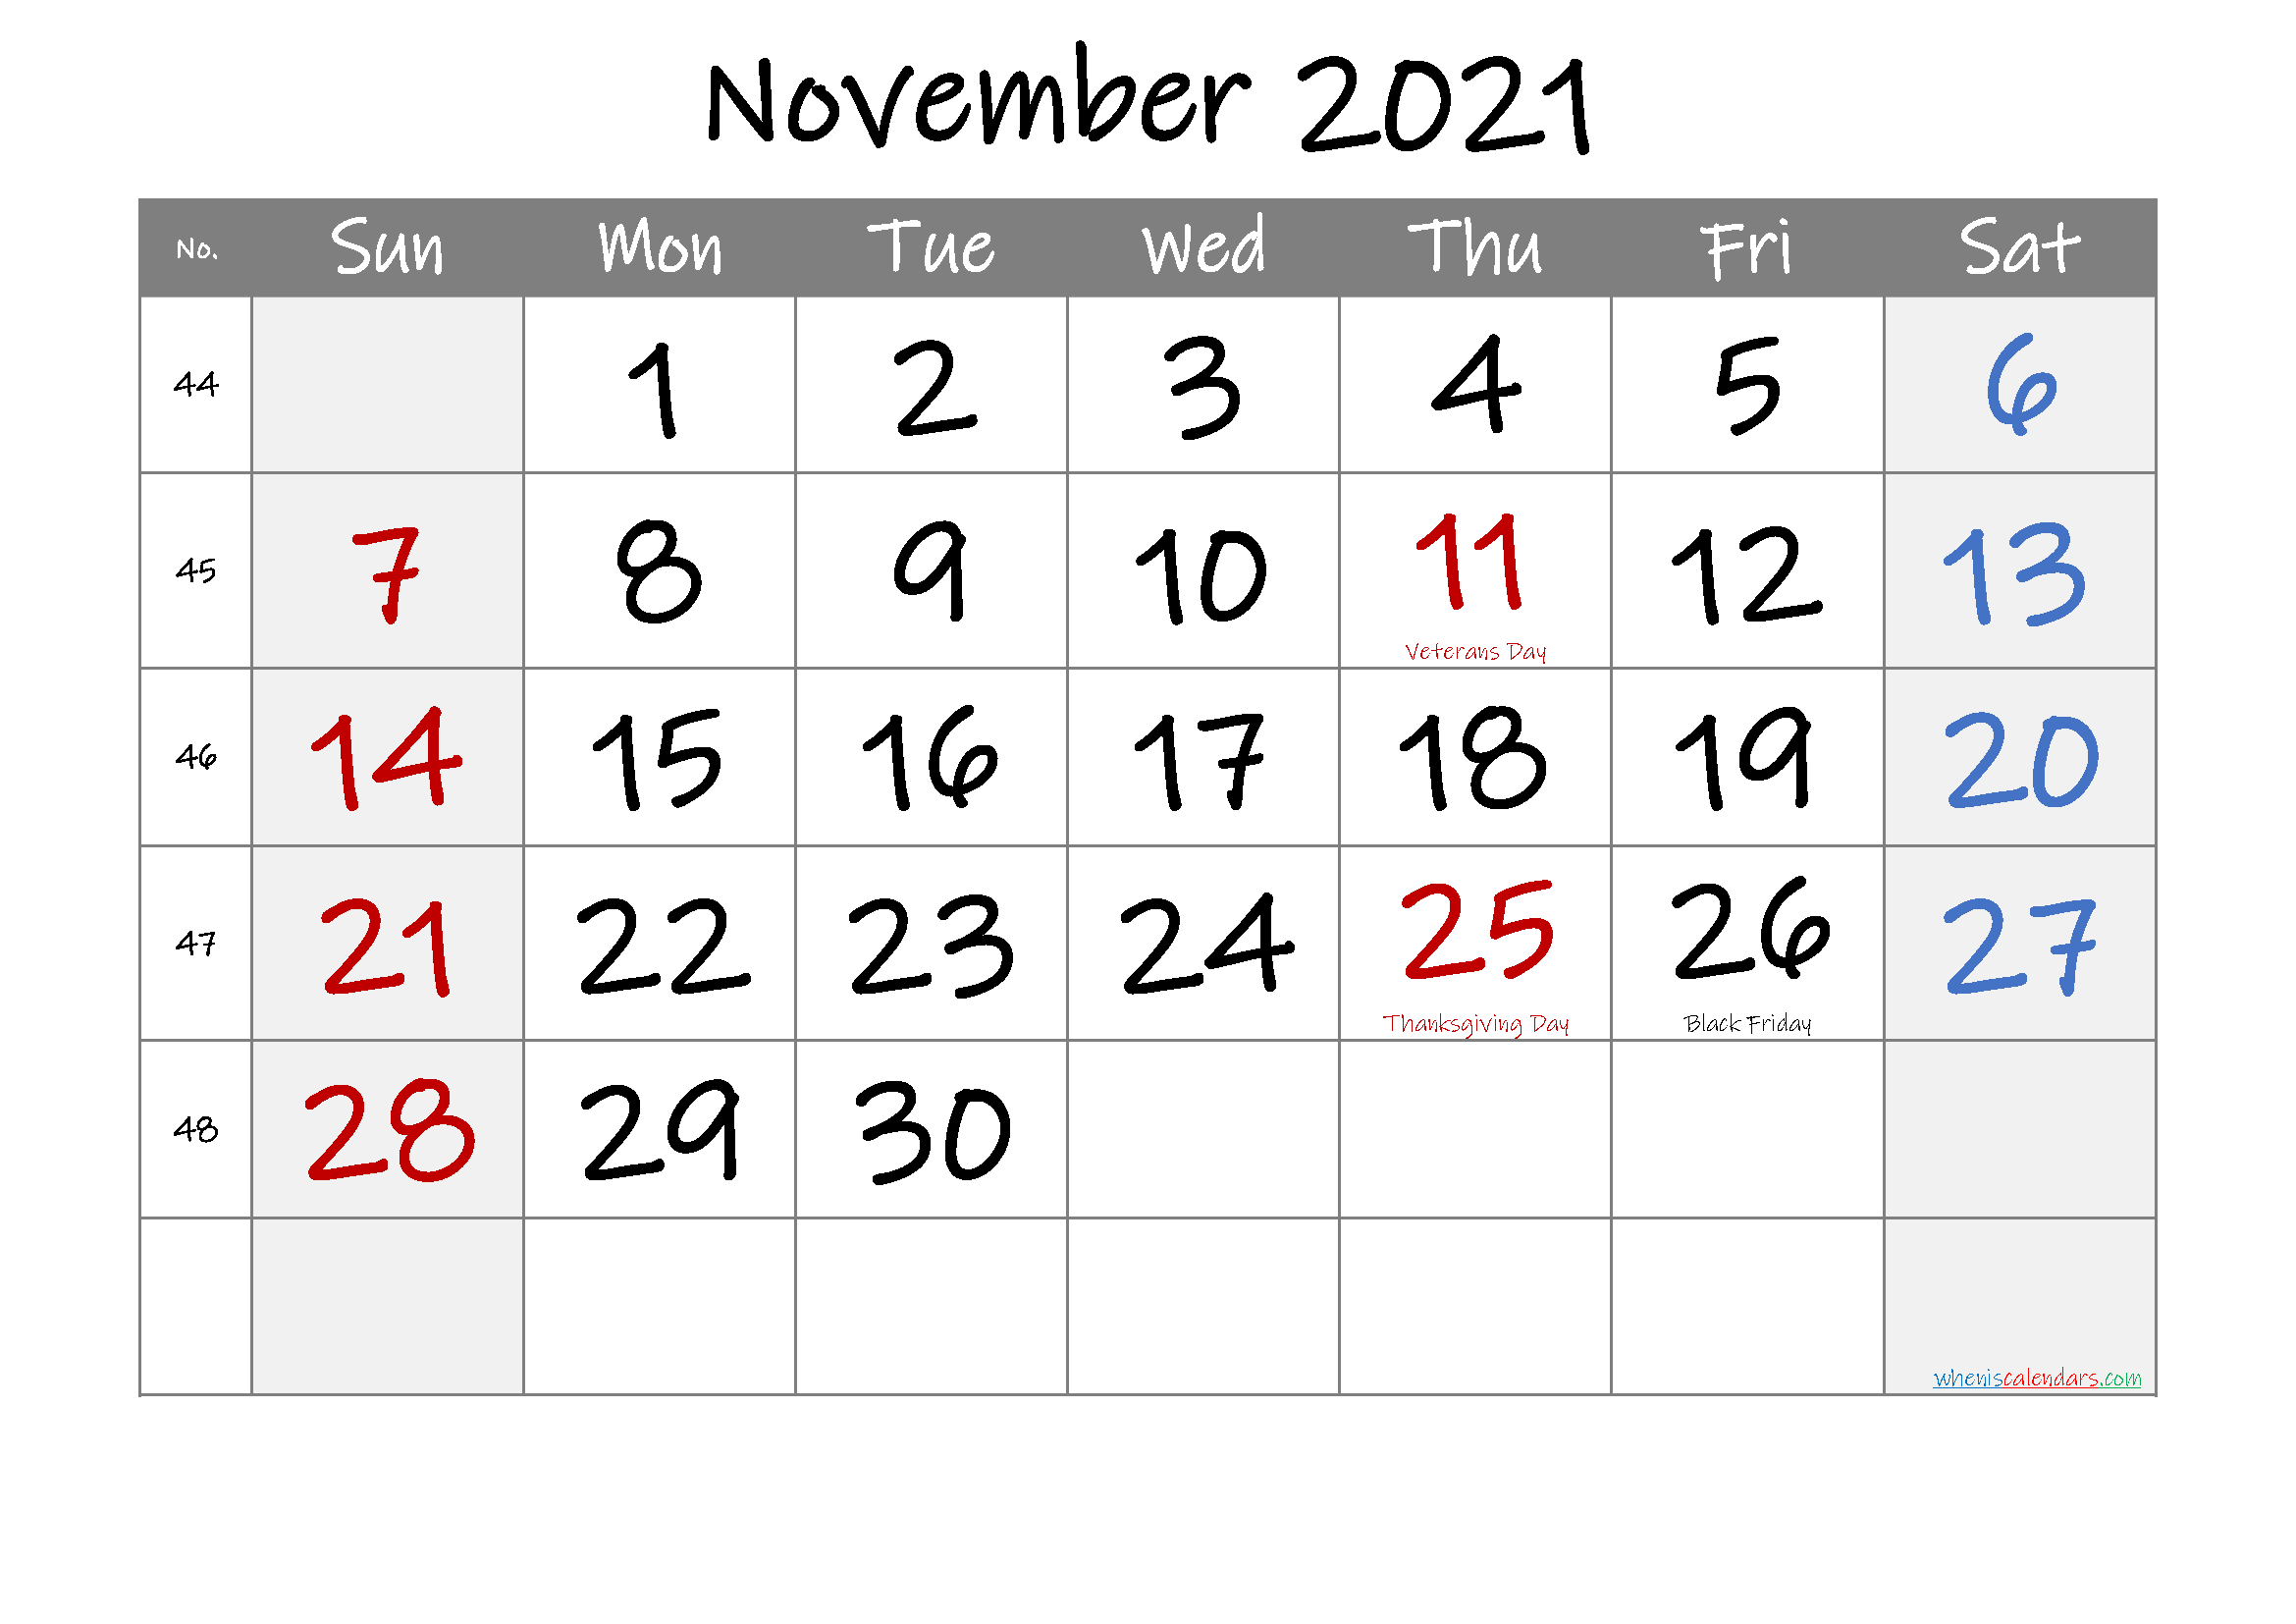 November 2021 Free Printable Calendar with Holidays